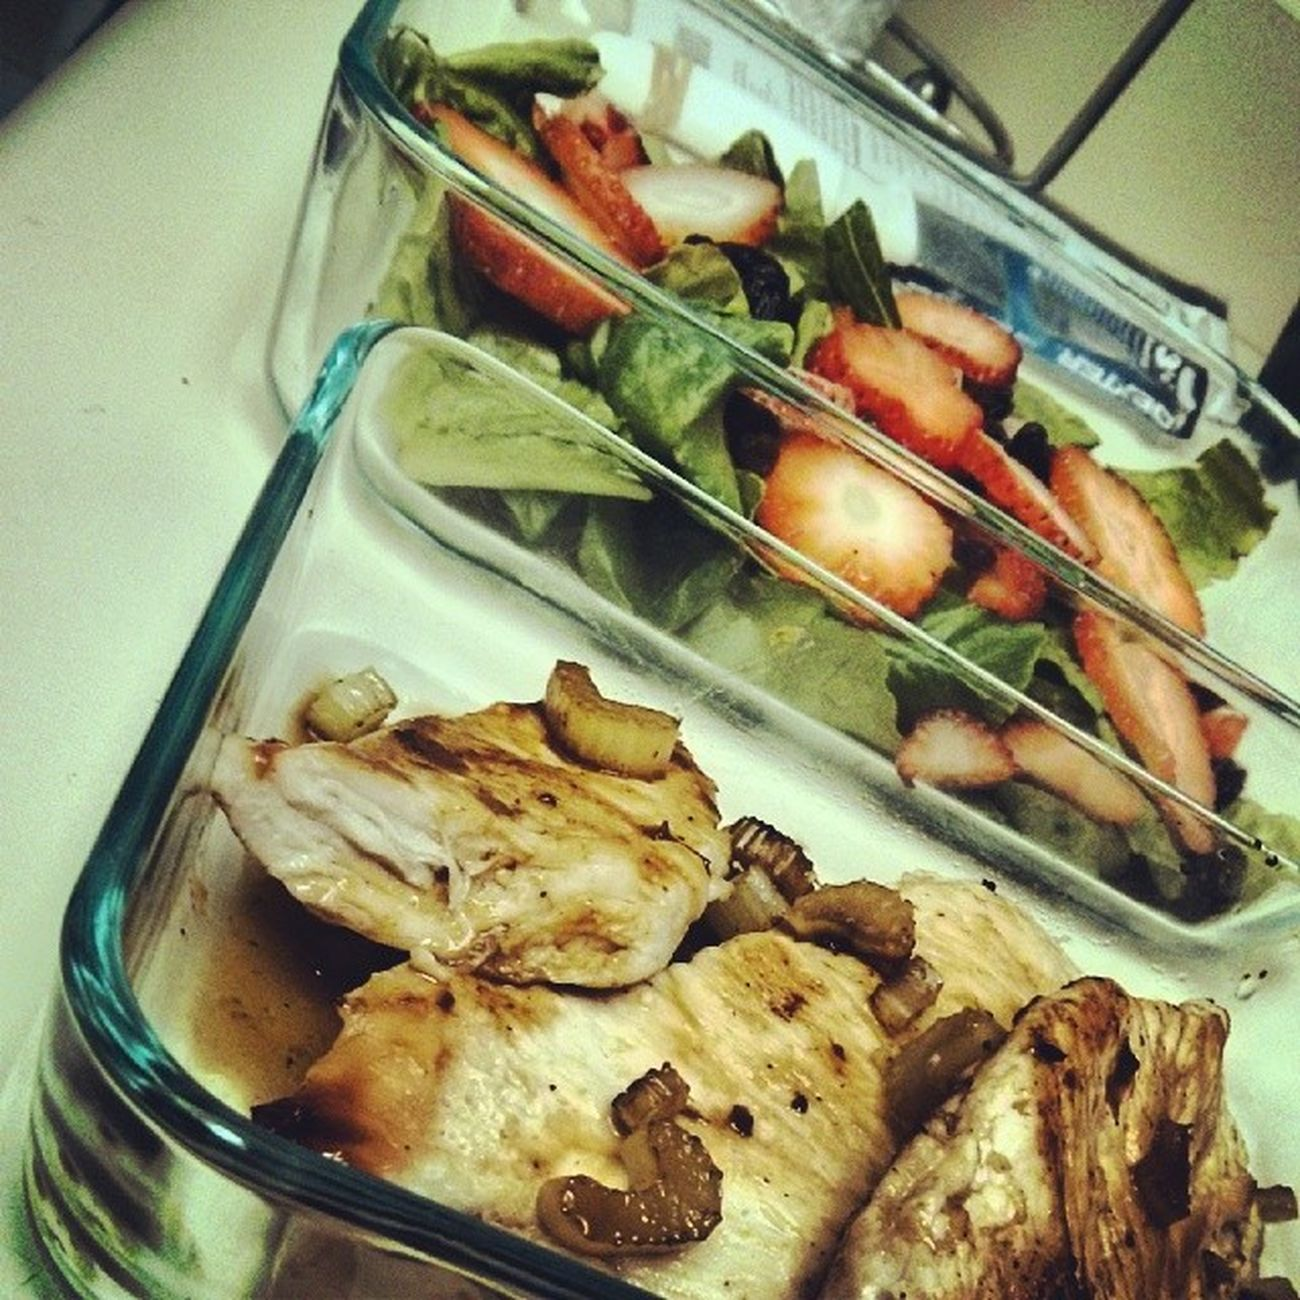 Celery Fried Chicken with an Onion & Garlic Reduction served with Strawberry and Raisin Salad for my sister's lunch. Boom! | GastonAcurioMode Lunchtime Lunch HelpingMom Florida USA